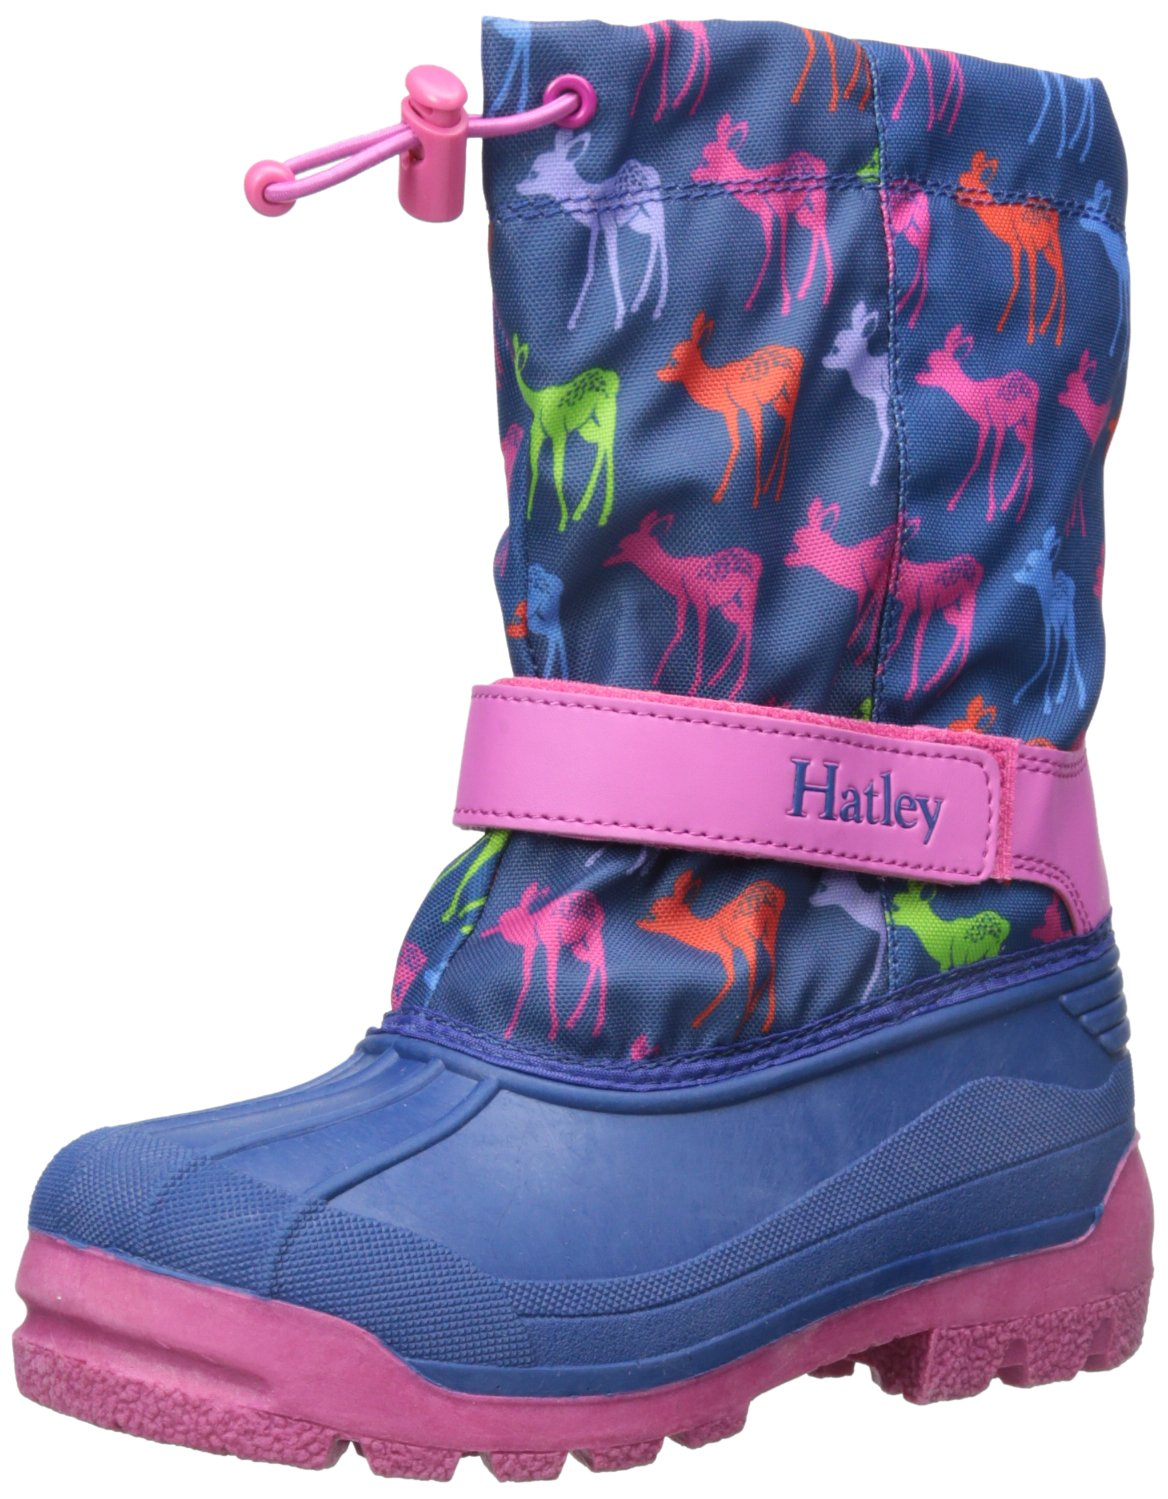 Hatley Girls' Winter Boots-Graphic Deers, Blue, 3